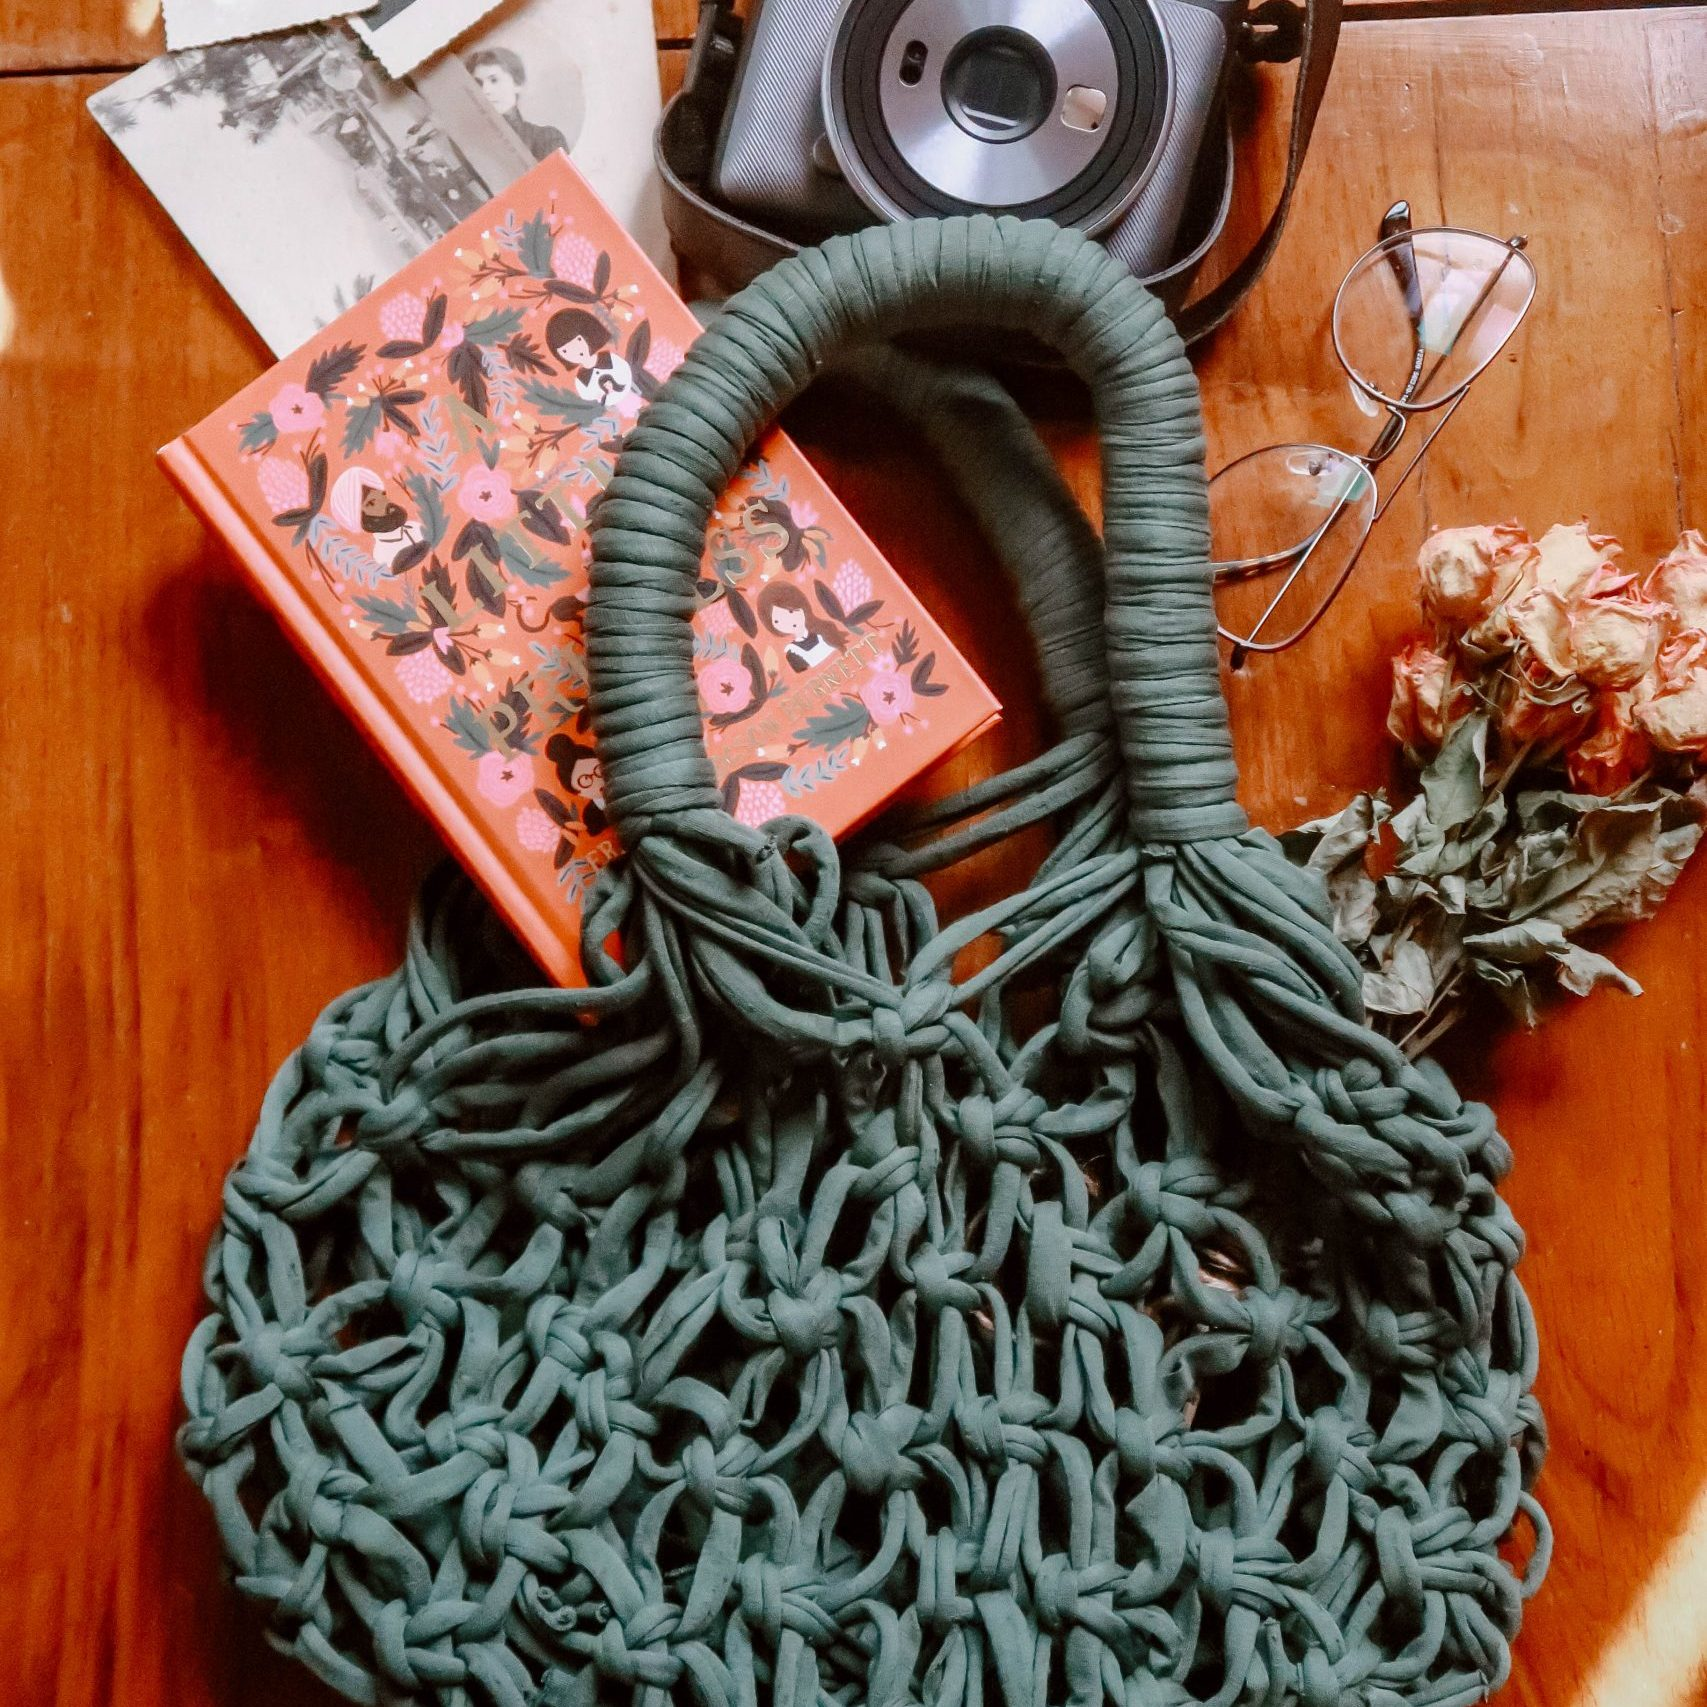 DIY macrame market bag from recycled T-shirt yarn